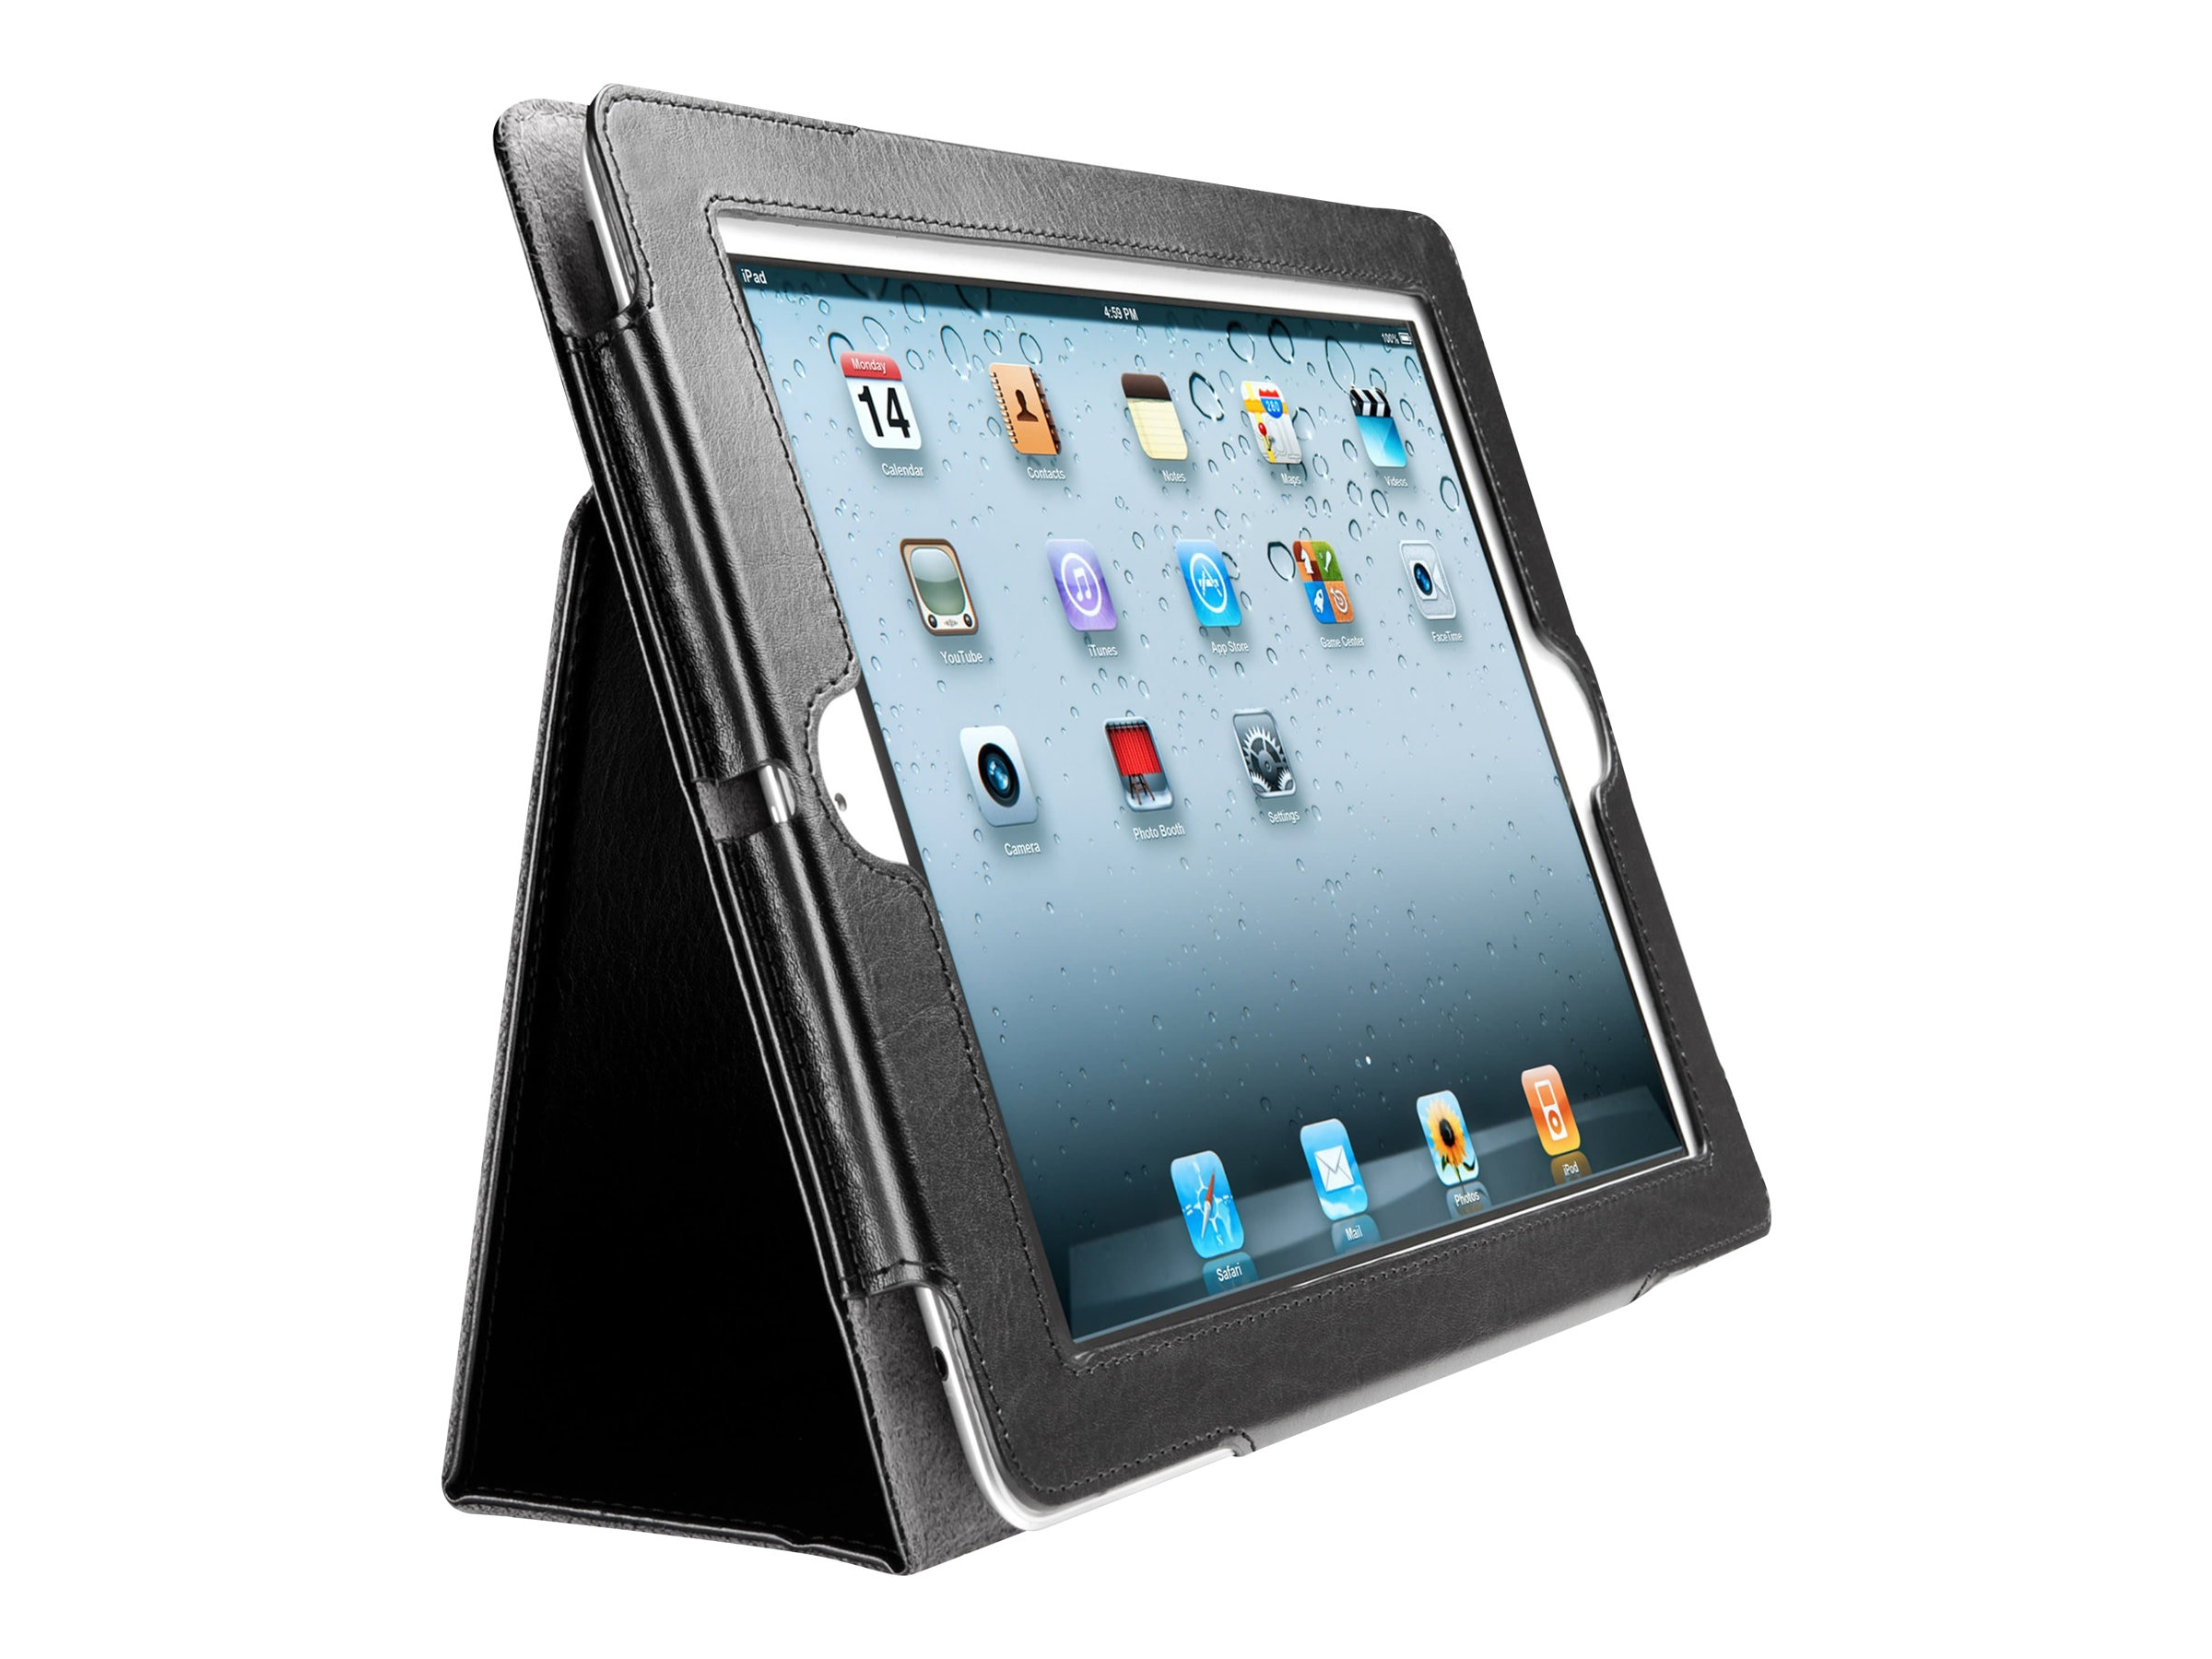 Kensington Folio Case for iPad 2, Black, K39397WW, 13445210, Carrying Cases - Tablets & eReaders